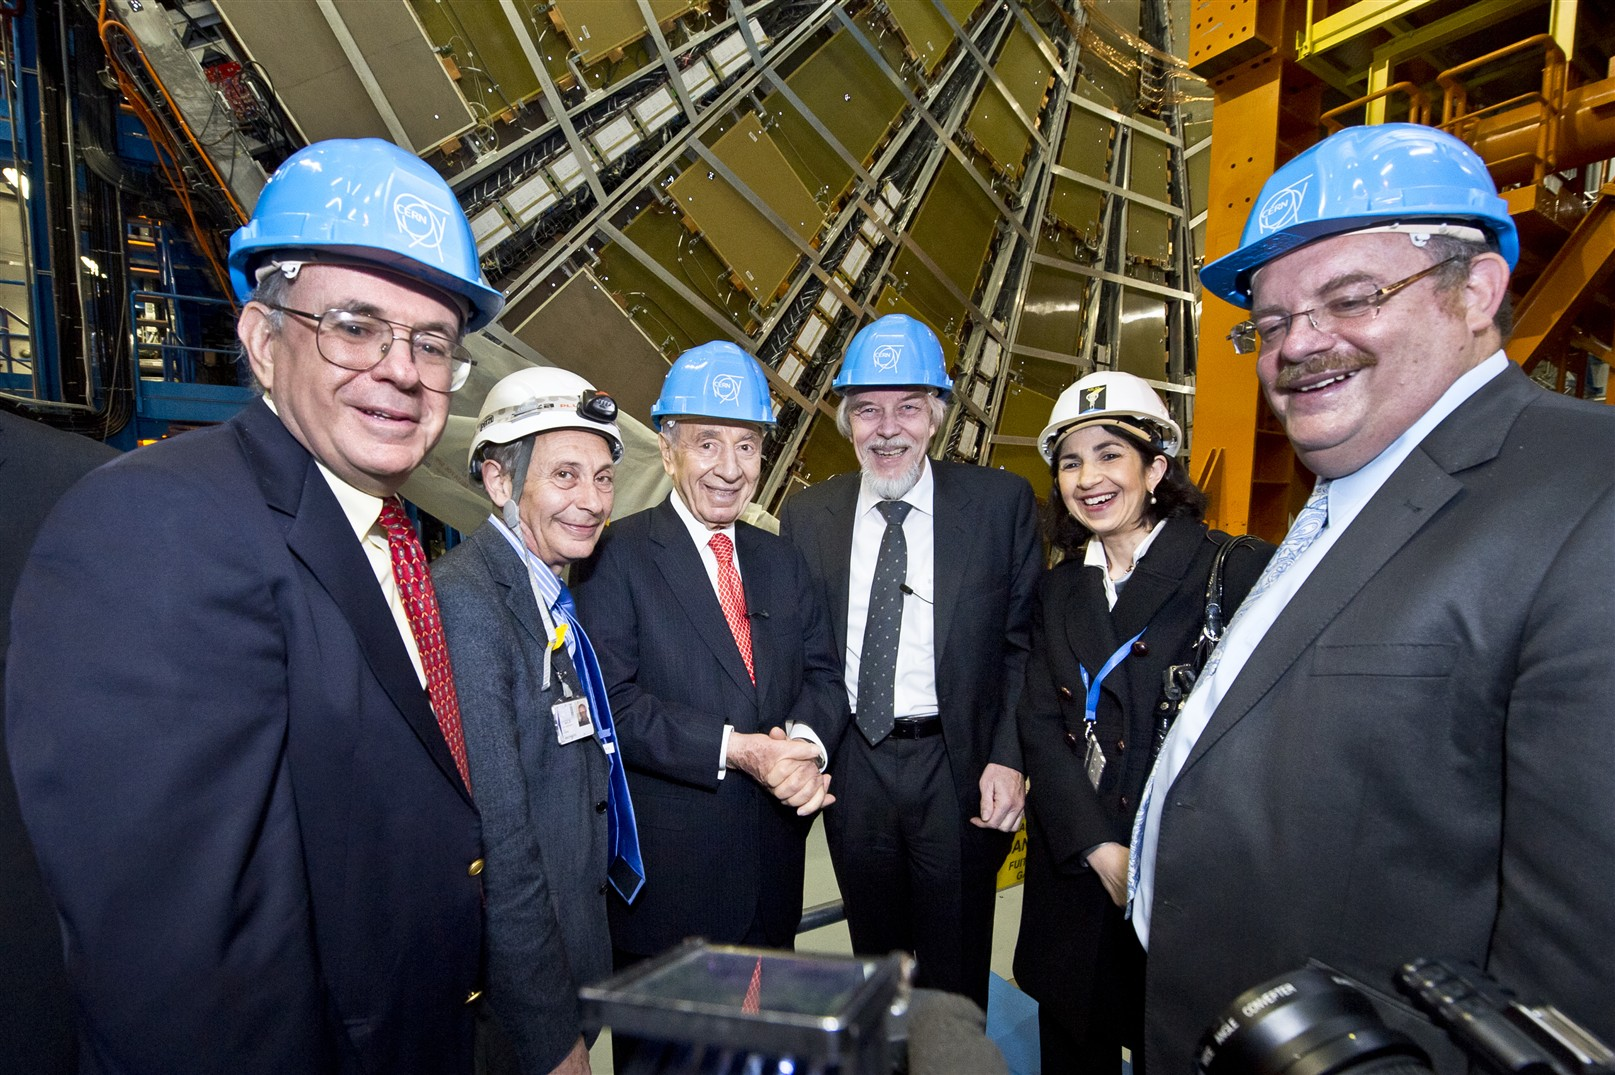 29 March 2011 - Ninth President of Israel S.Peres welcomed by CERN Director-General R. Heuer.